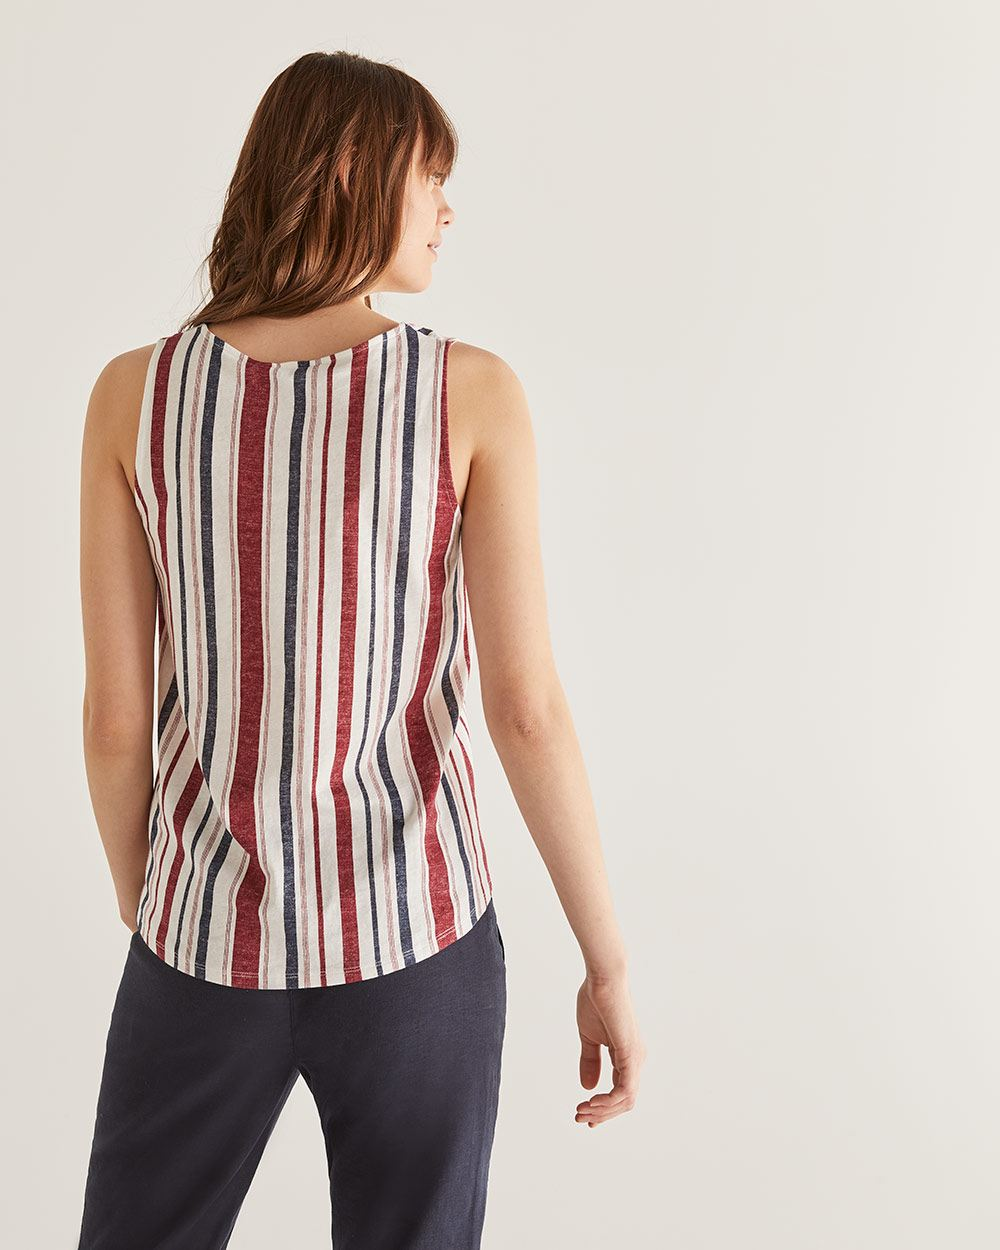 Cotton & Linen-Blend Printed Tank Top with Buttons - Petite